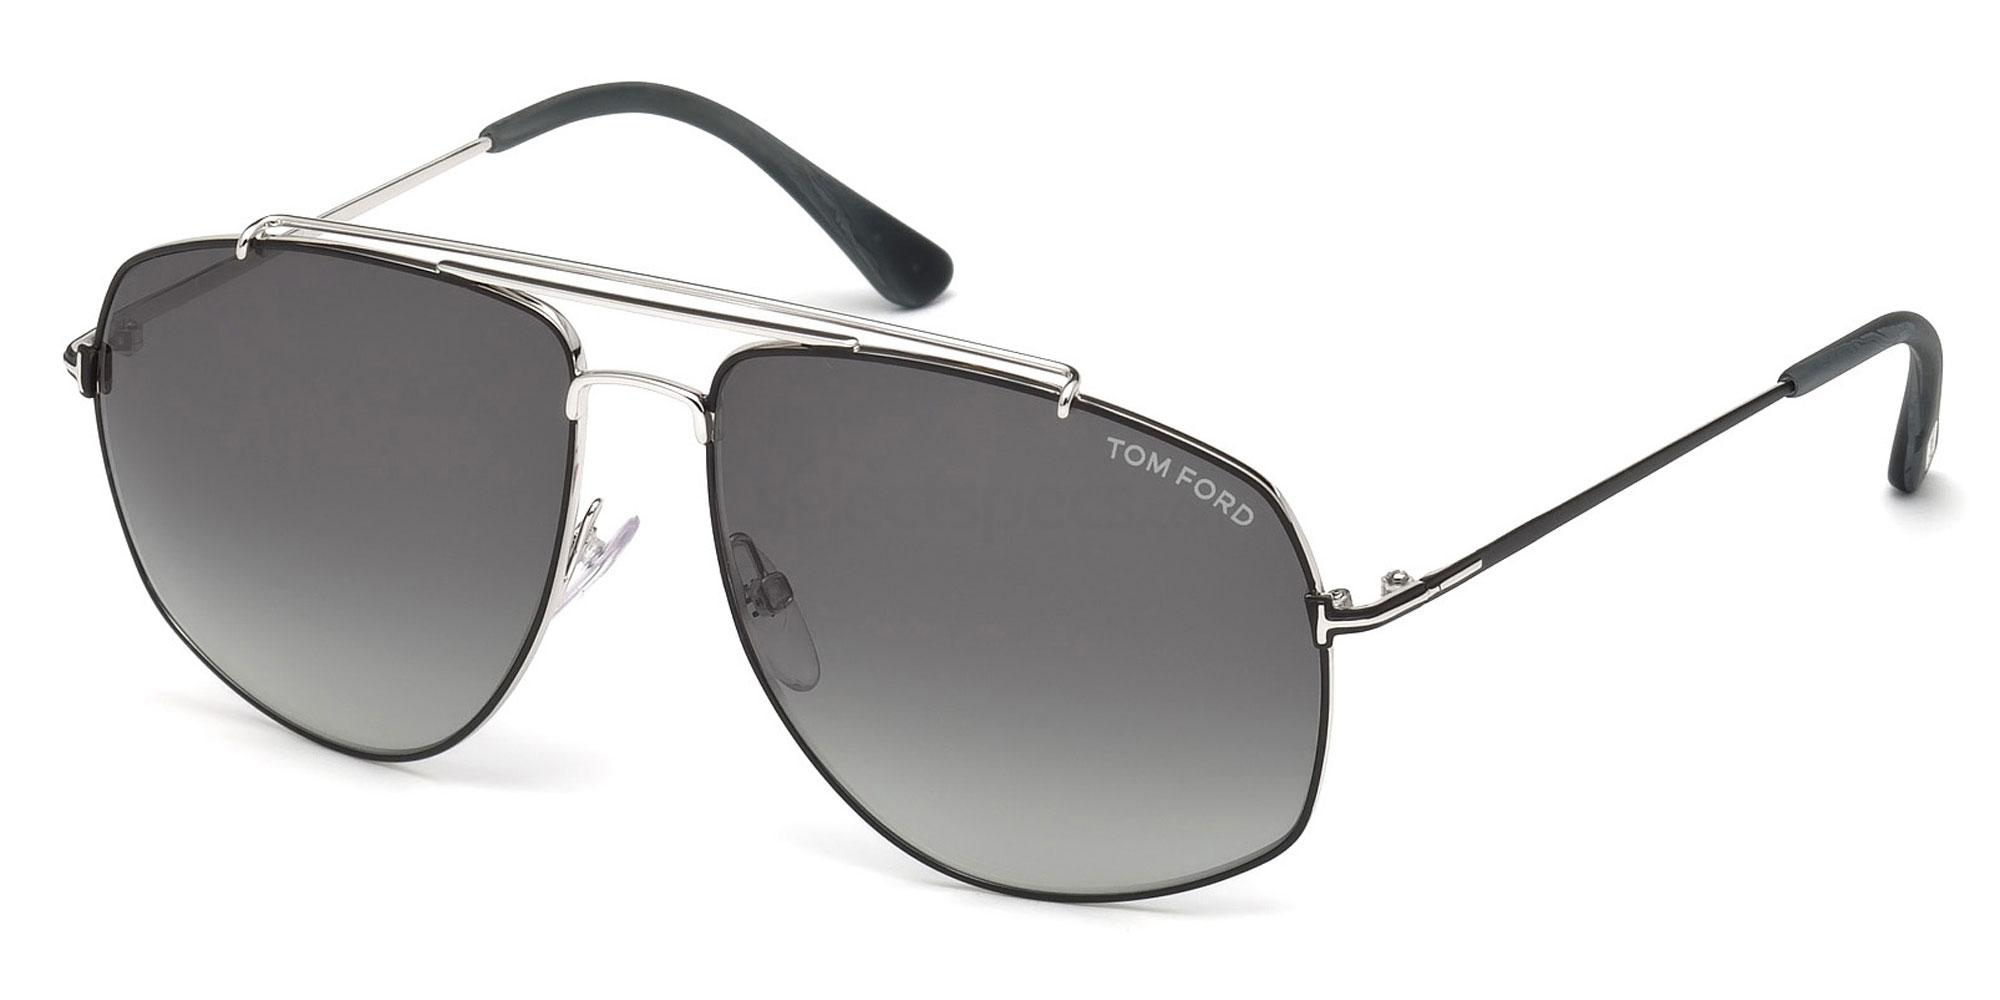 18A FT0496 Sunglasses, Tom Ford